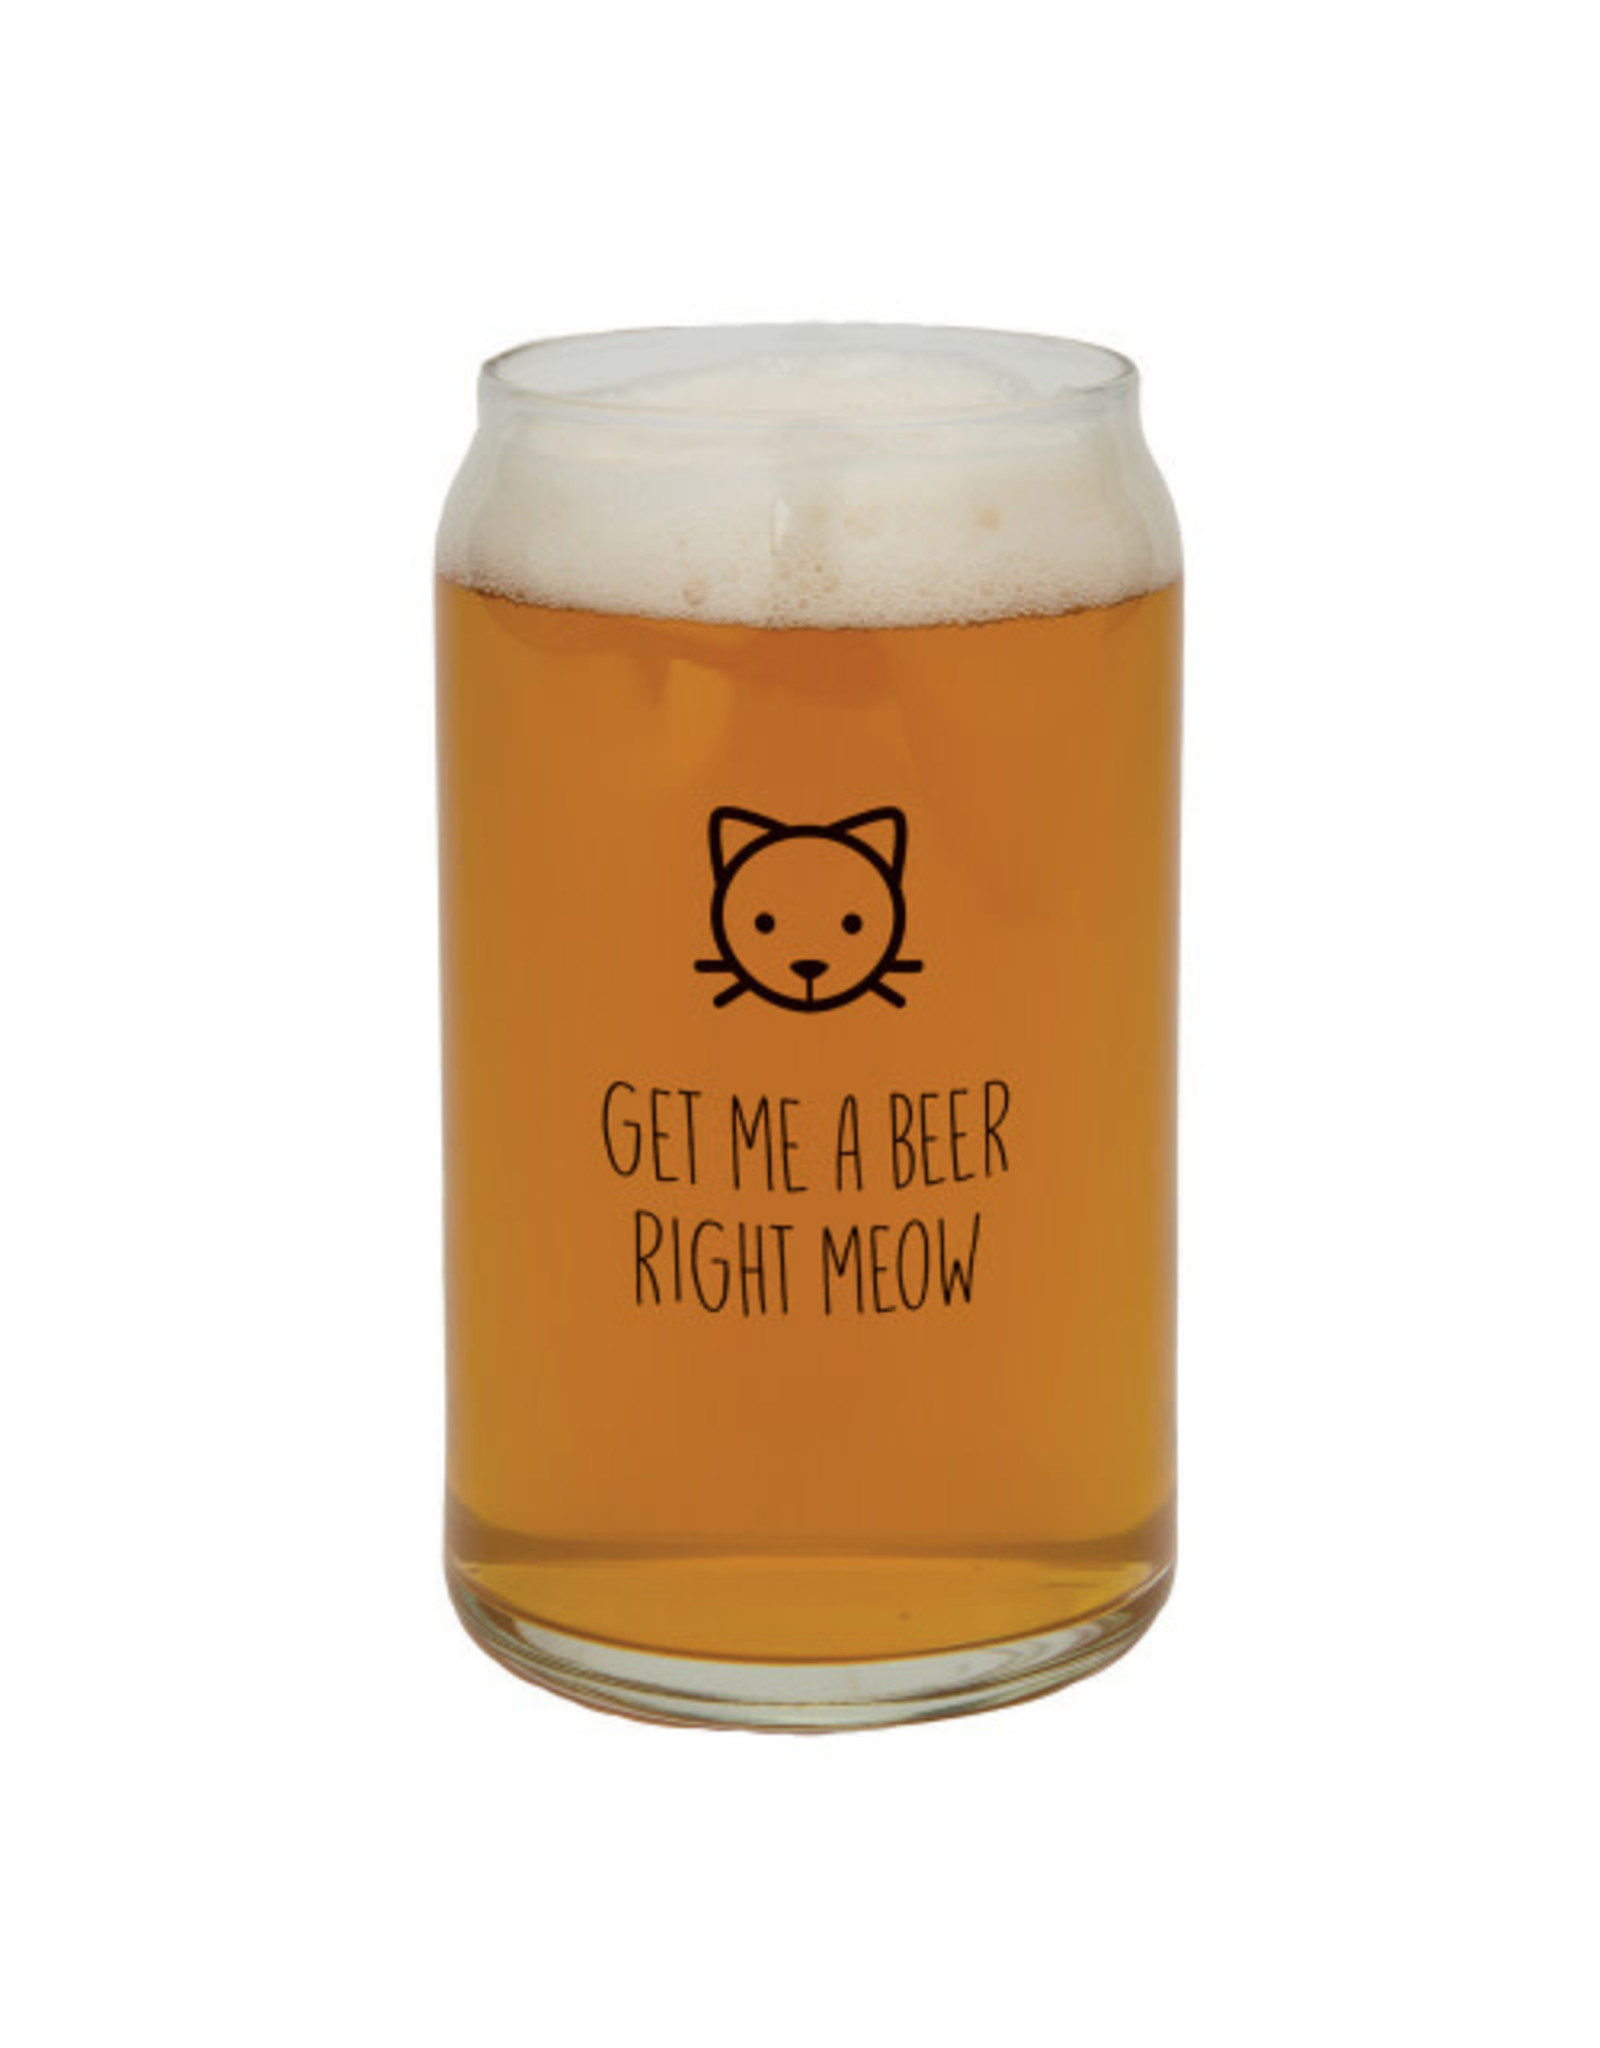 Creative Brands Beer Glass, Get Me A Beer Right Meow